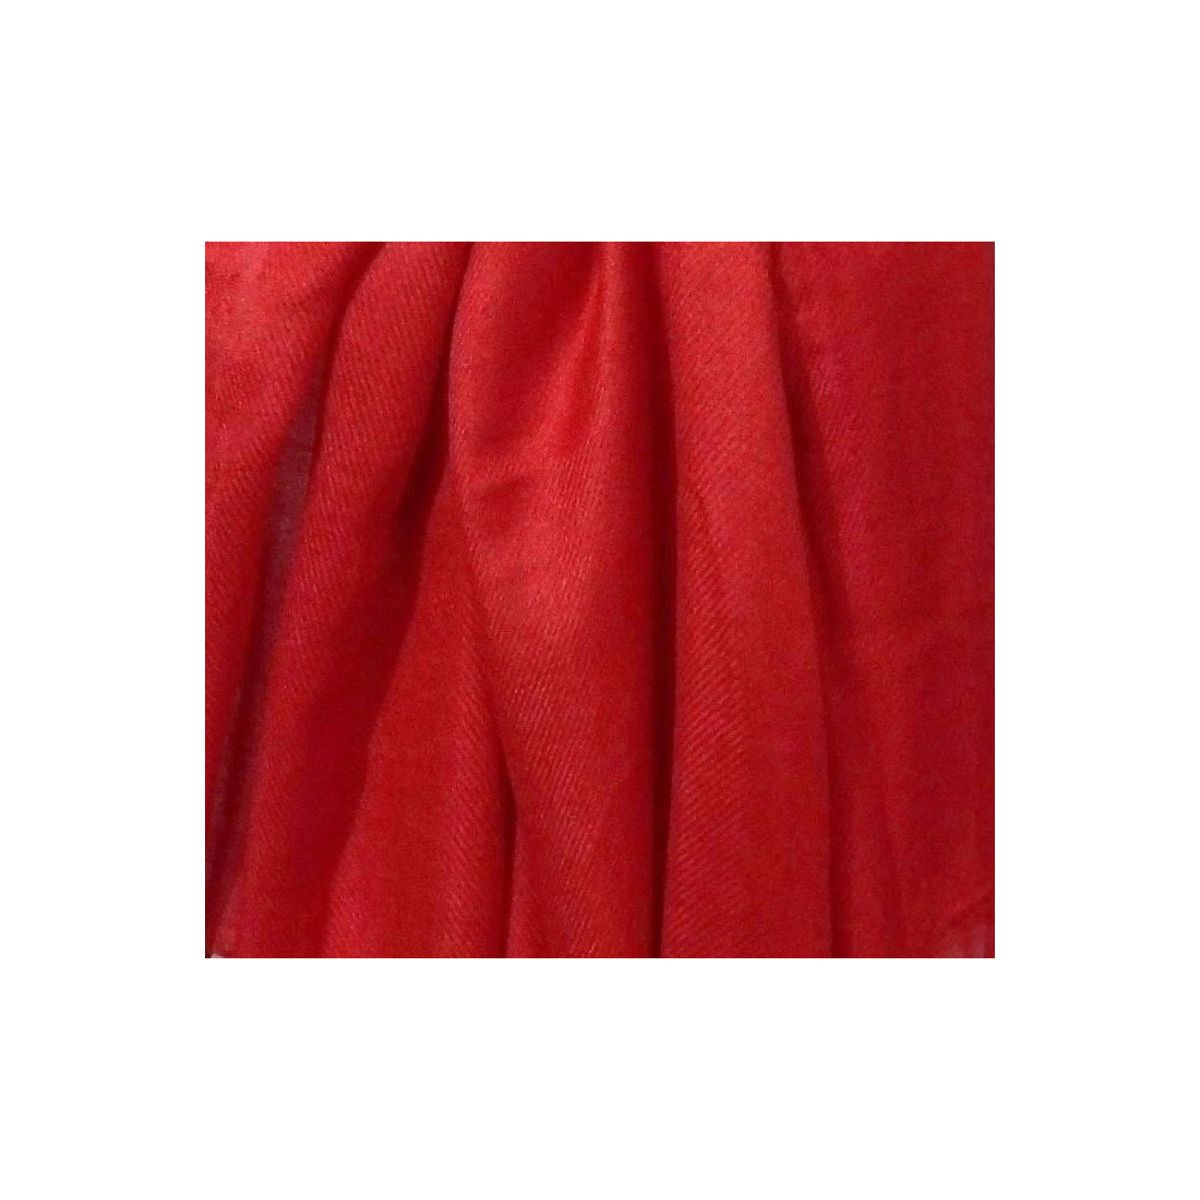 Muumuu Solid Red Viscose Womens Stole